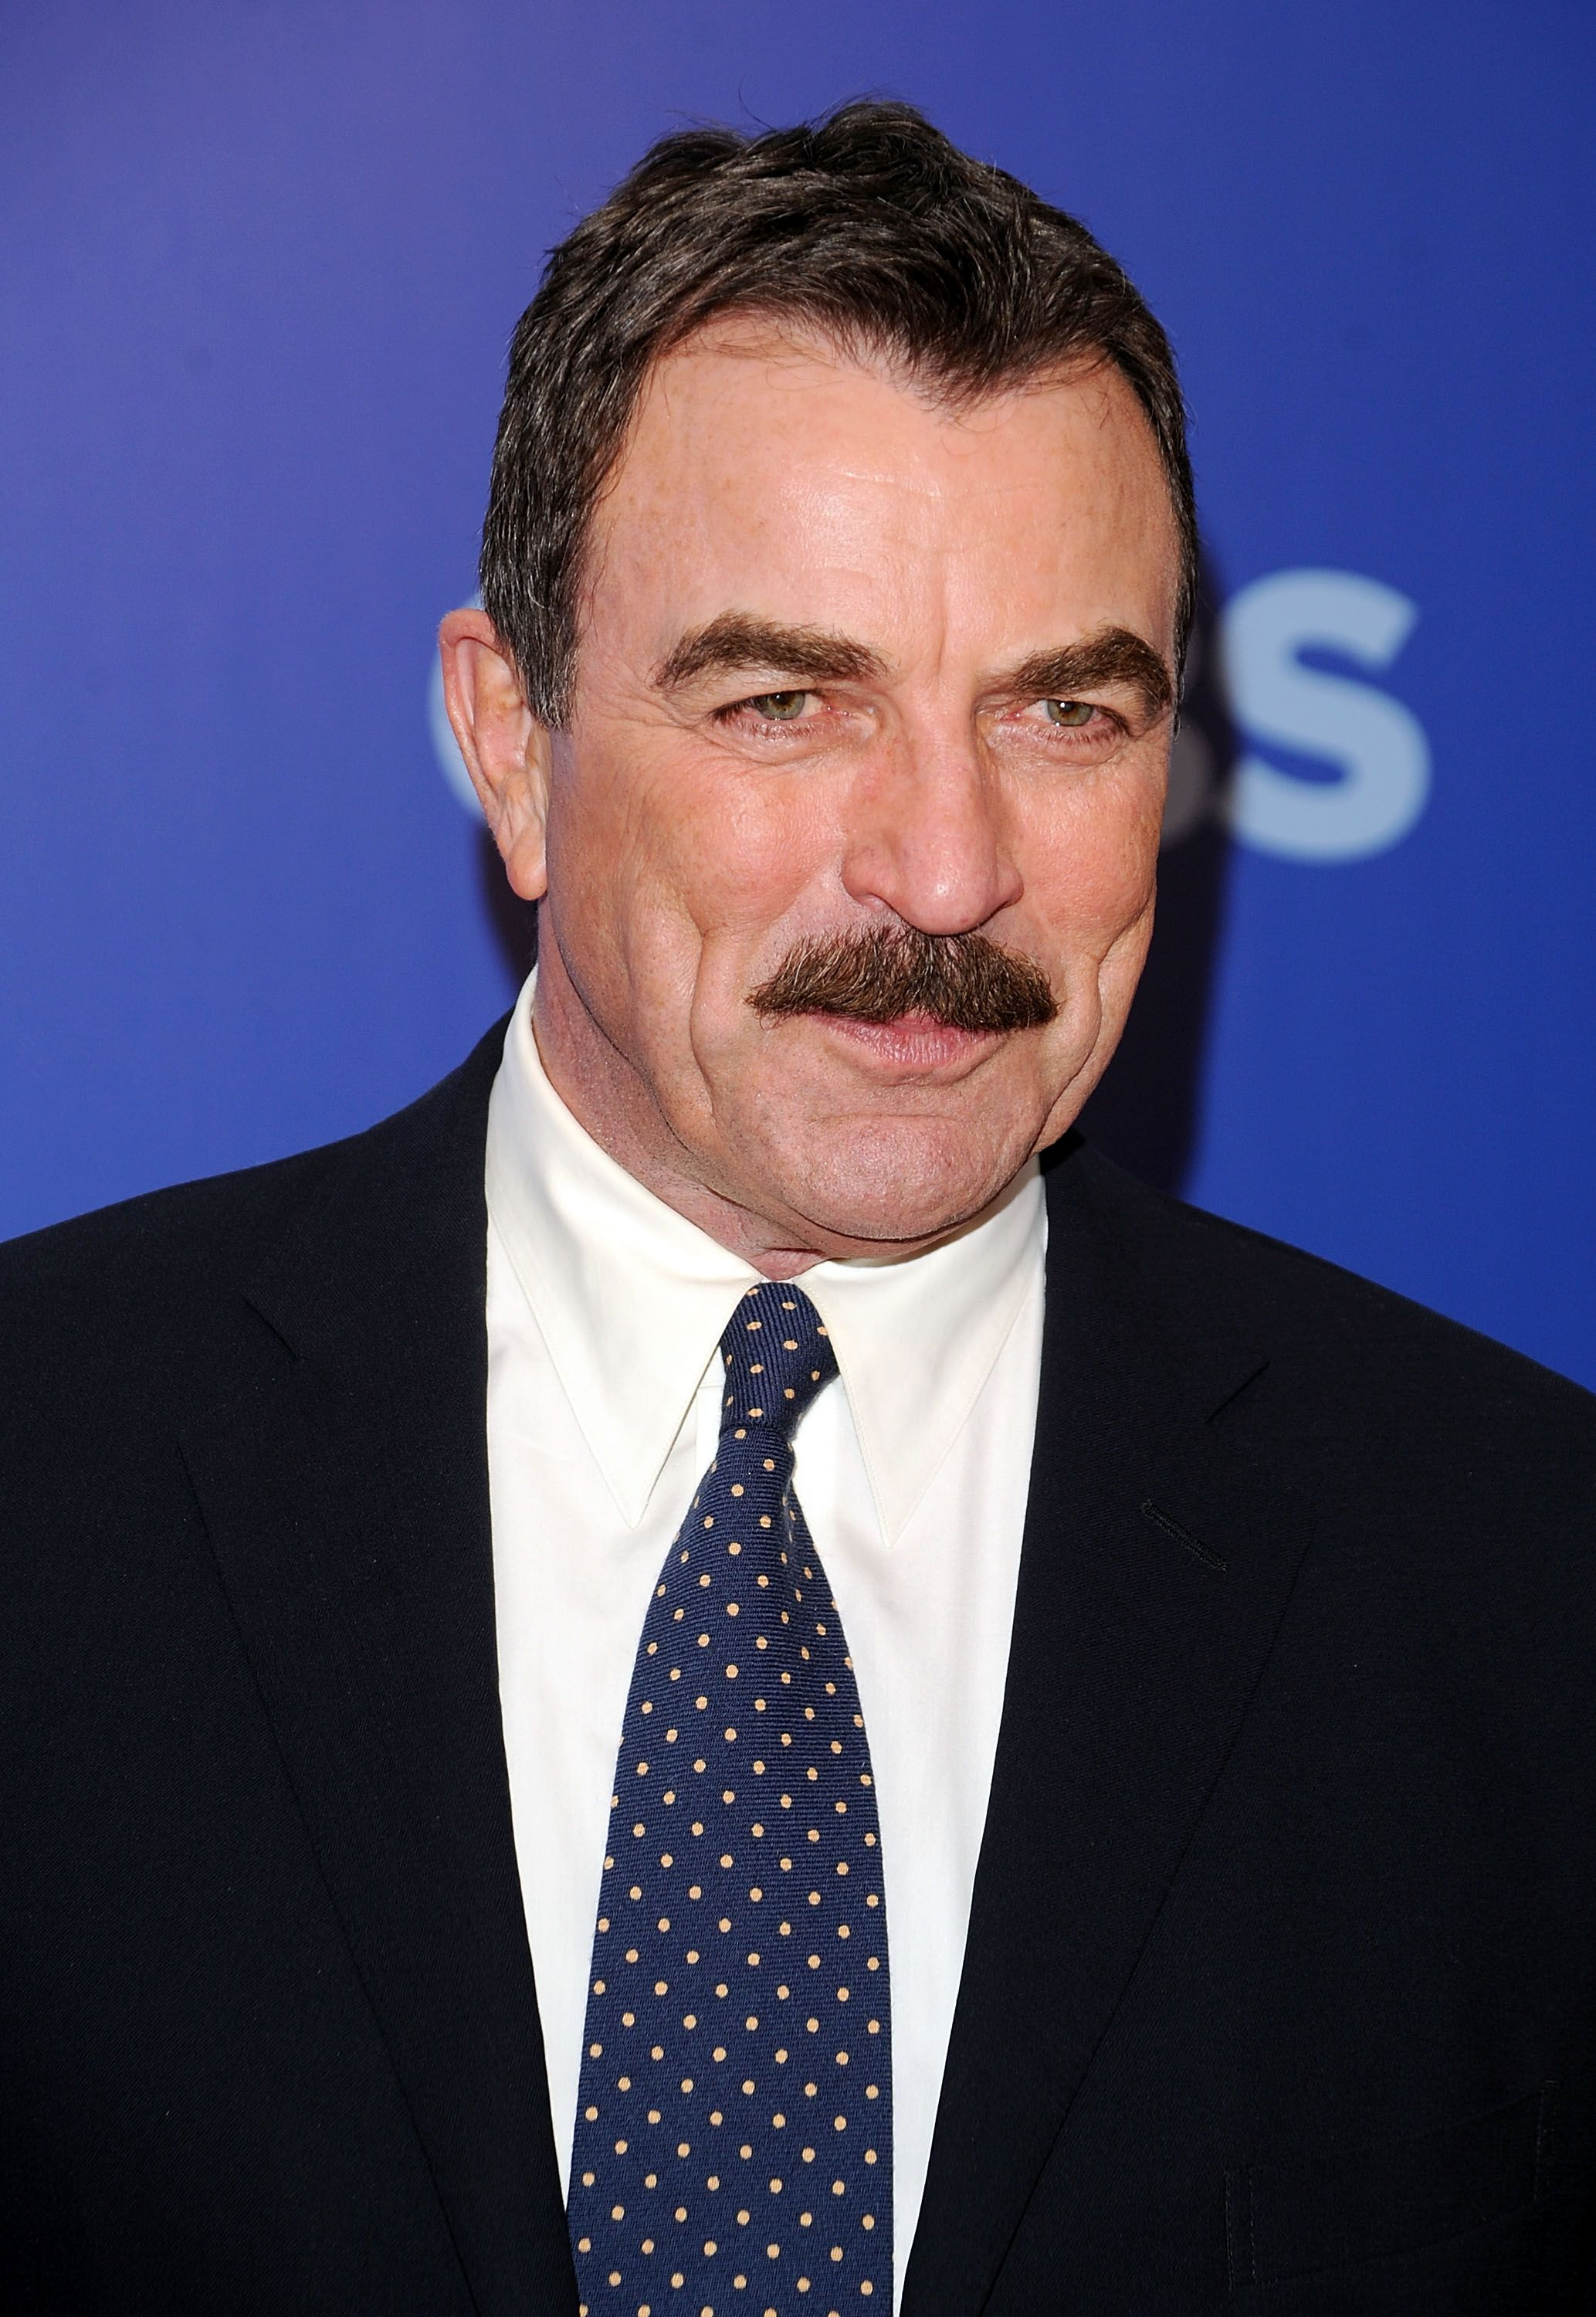 Tom Selleck at CBS UpFront at Damrosch Park, Lincoln Center on May 19, 2010, in New York City   Photo: Andrew H. Walker/Getty Images